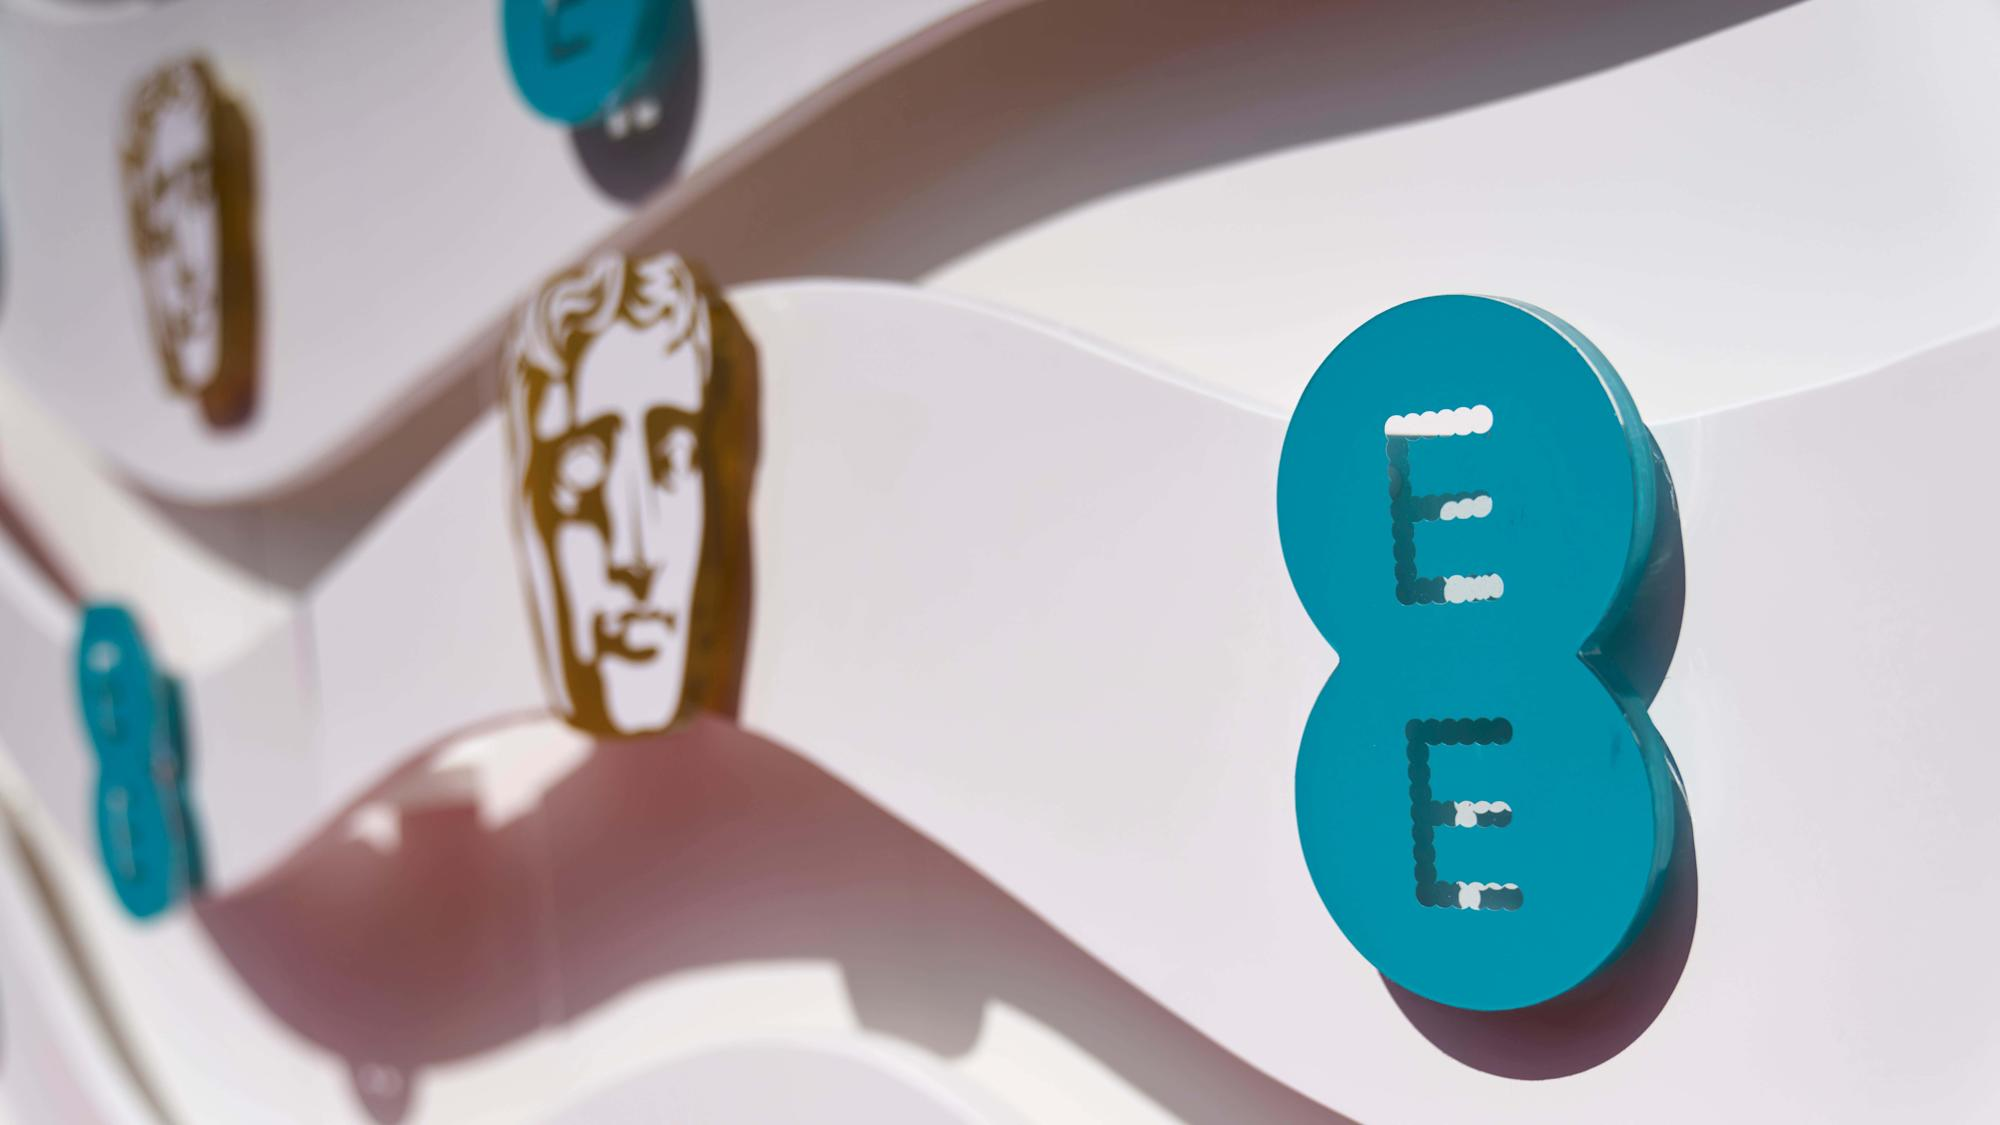 Bafta in memoriam segment honours Philip, Sean Connery and Barbara Windsor